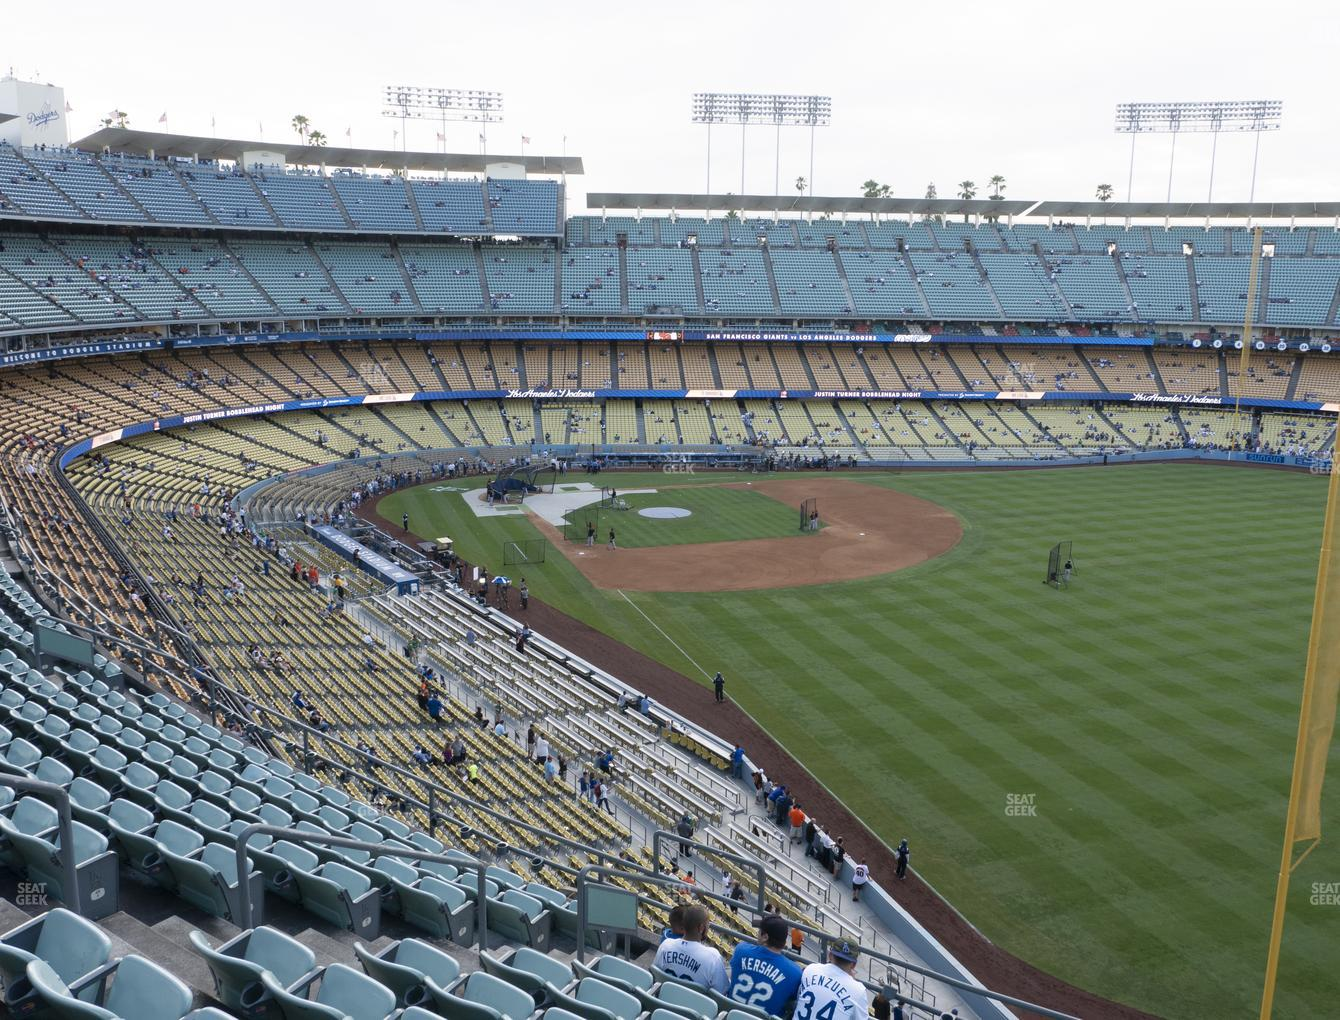 Los Angeles Dodgers at Dodger Stadium Reserve 52 View